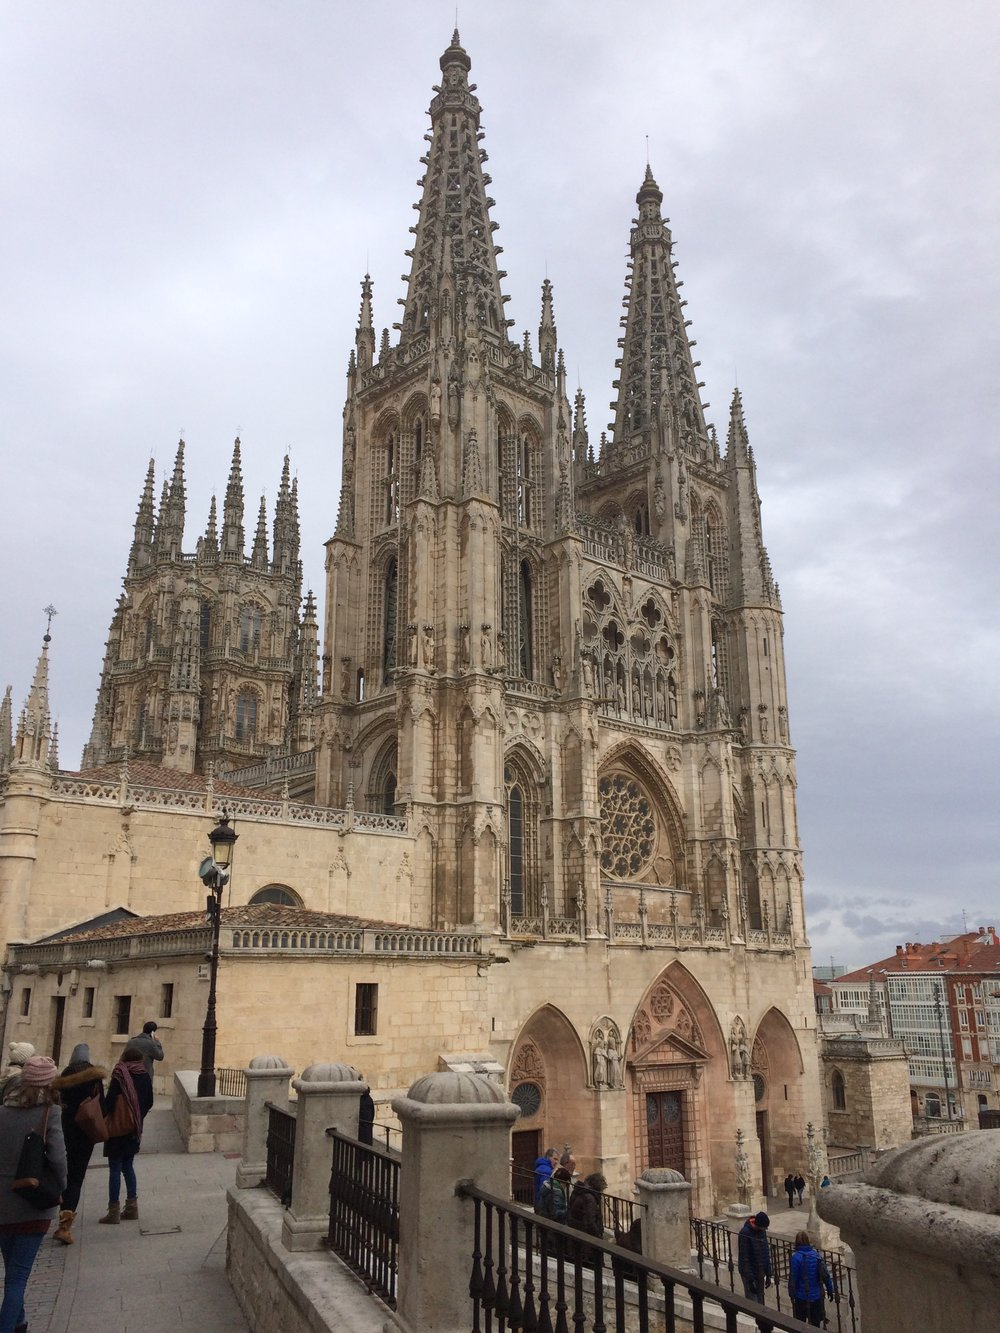 The Cathedral of Burgos in all its Gothic glory.